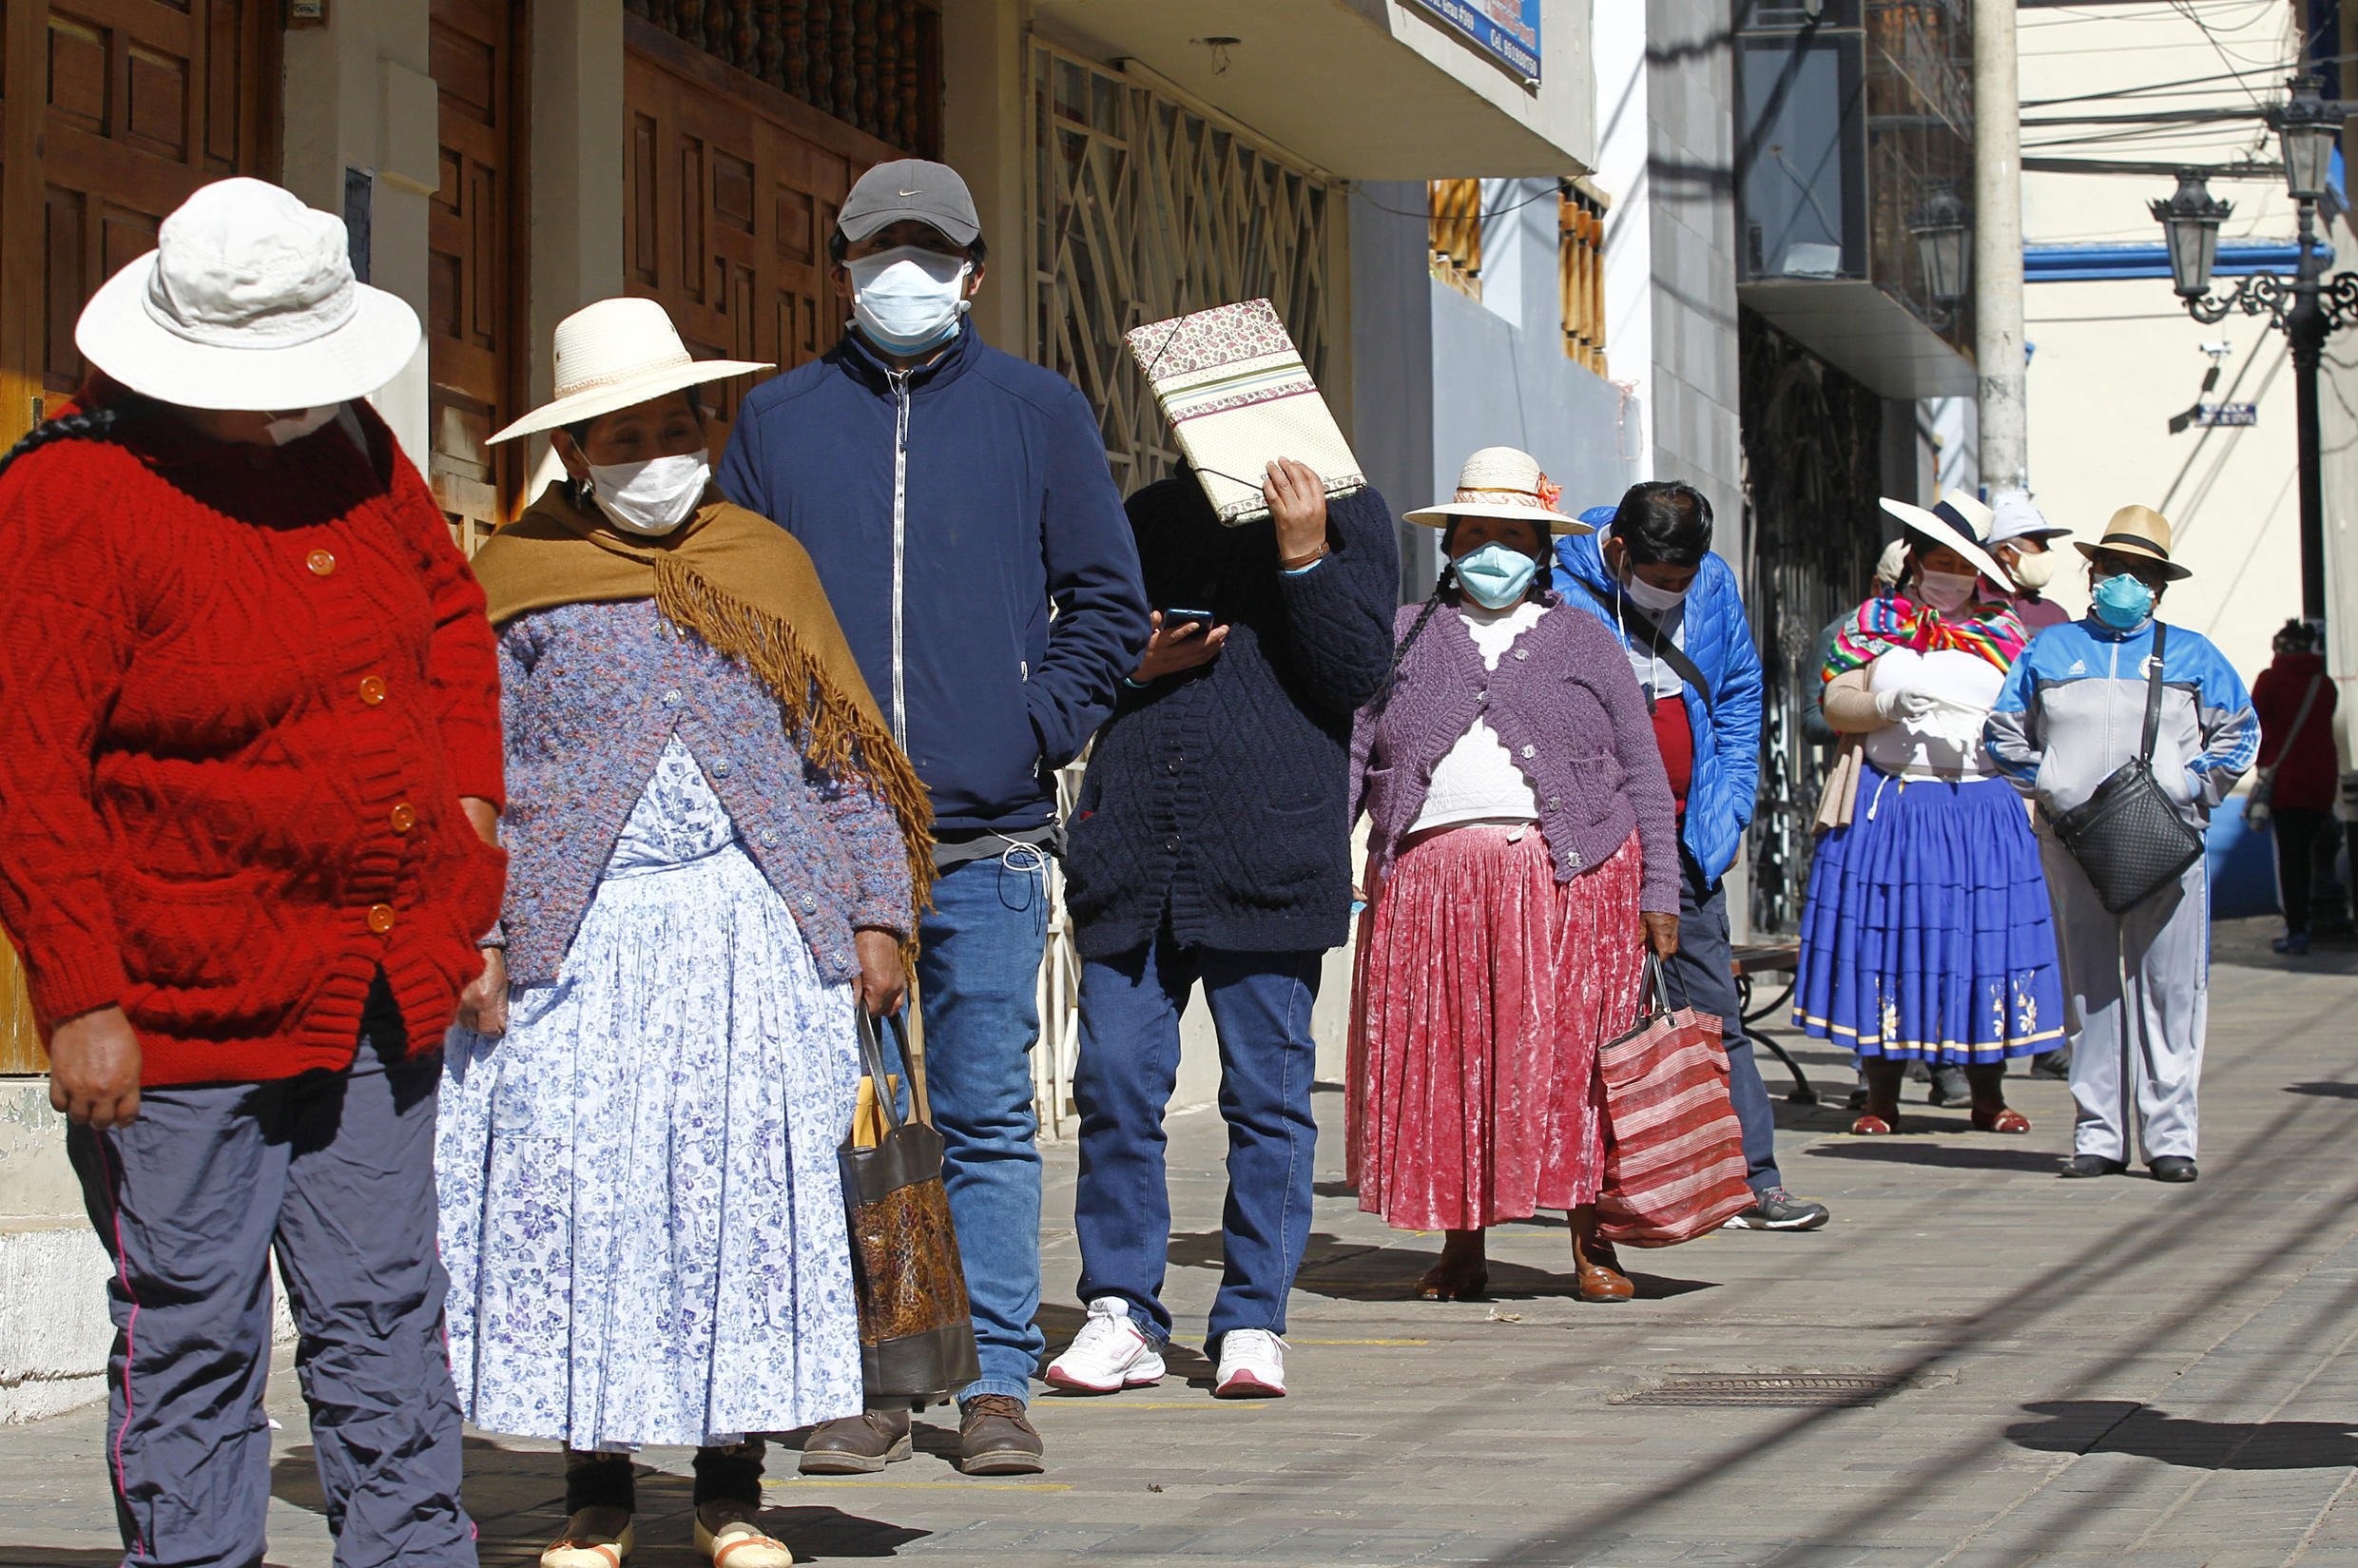 Peru has been particularly hard-hit by the coronavirus, with more than 100,000 cases and at least 3,000 deaths.